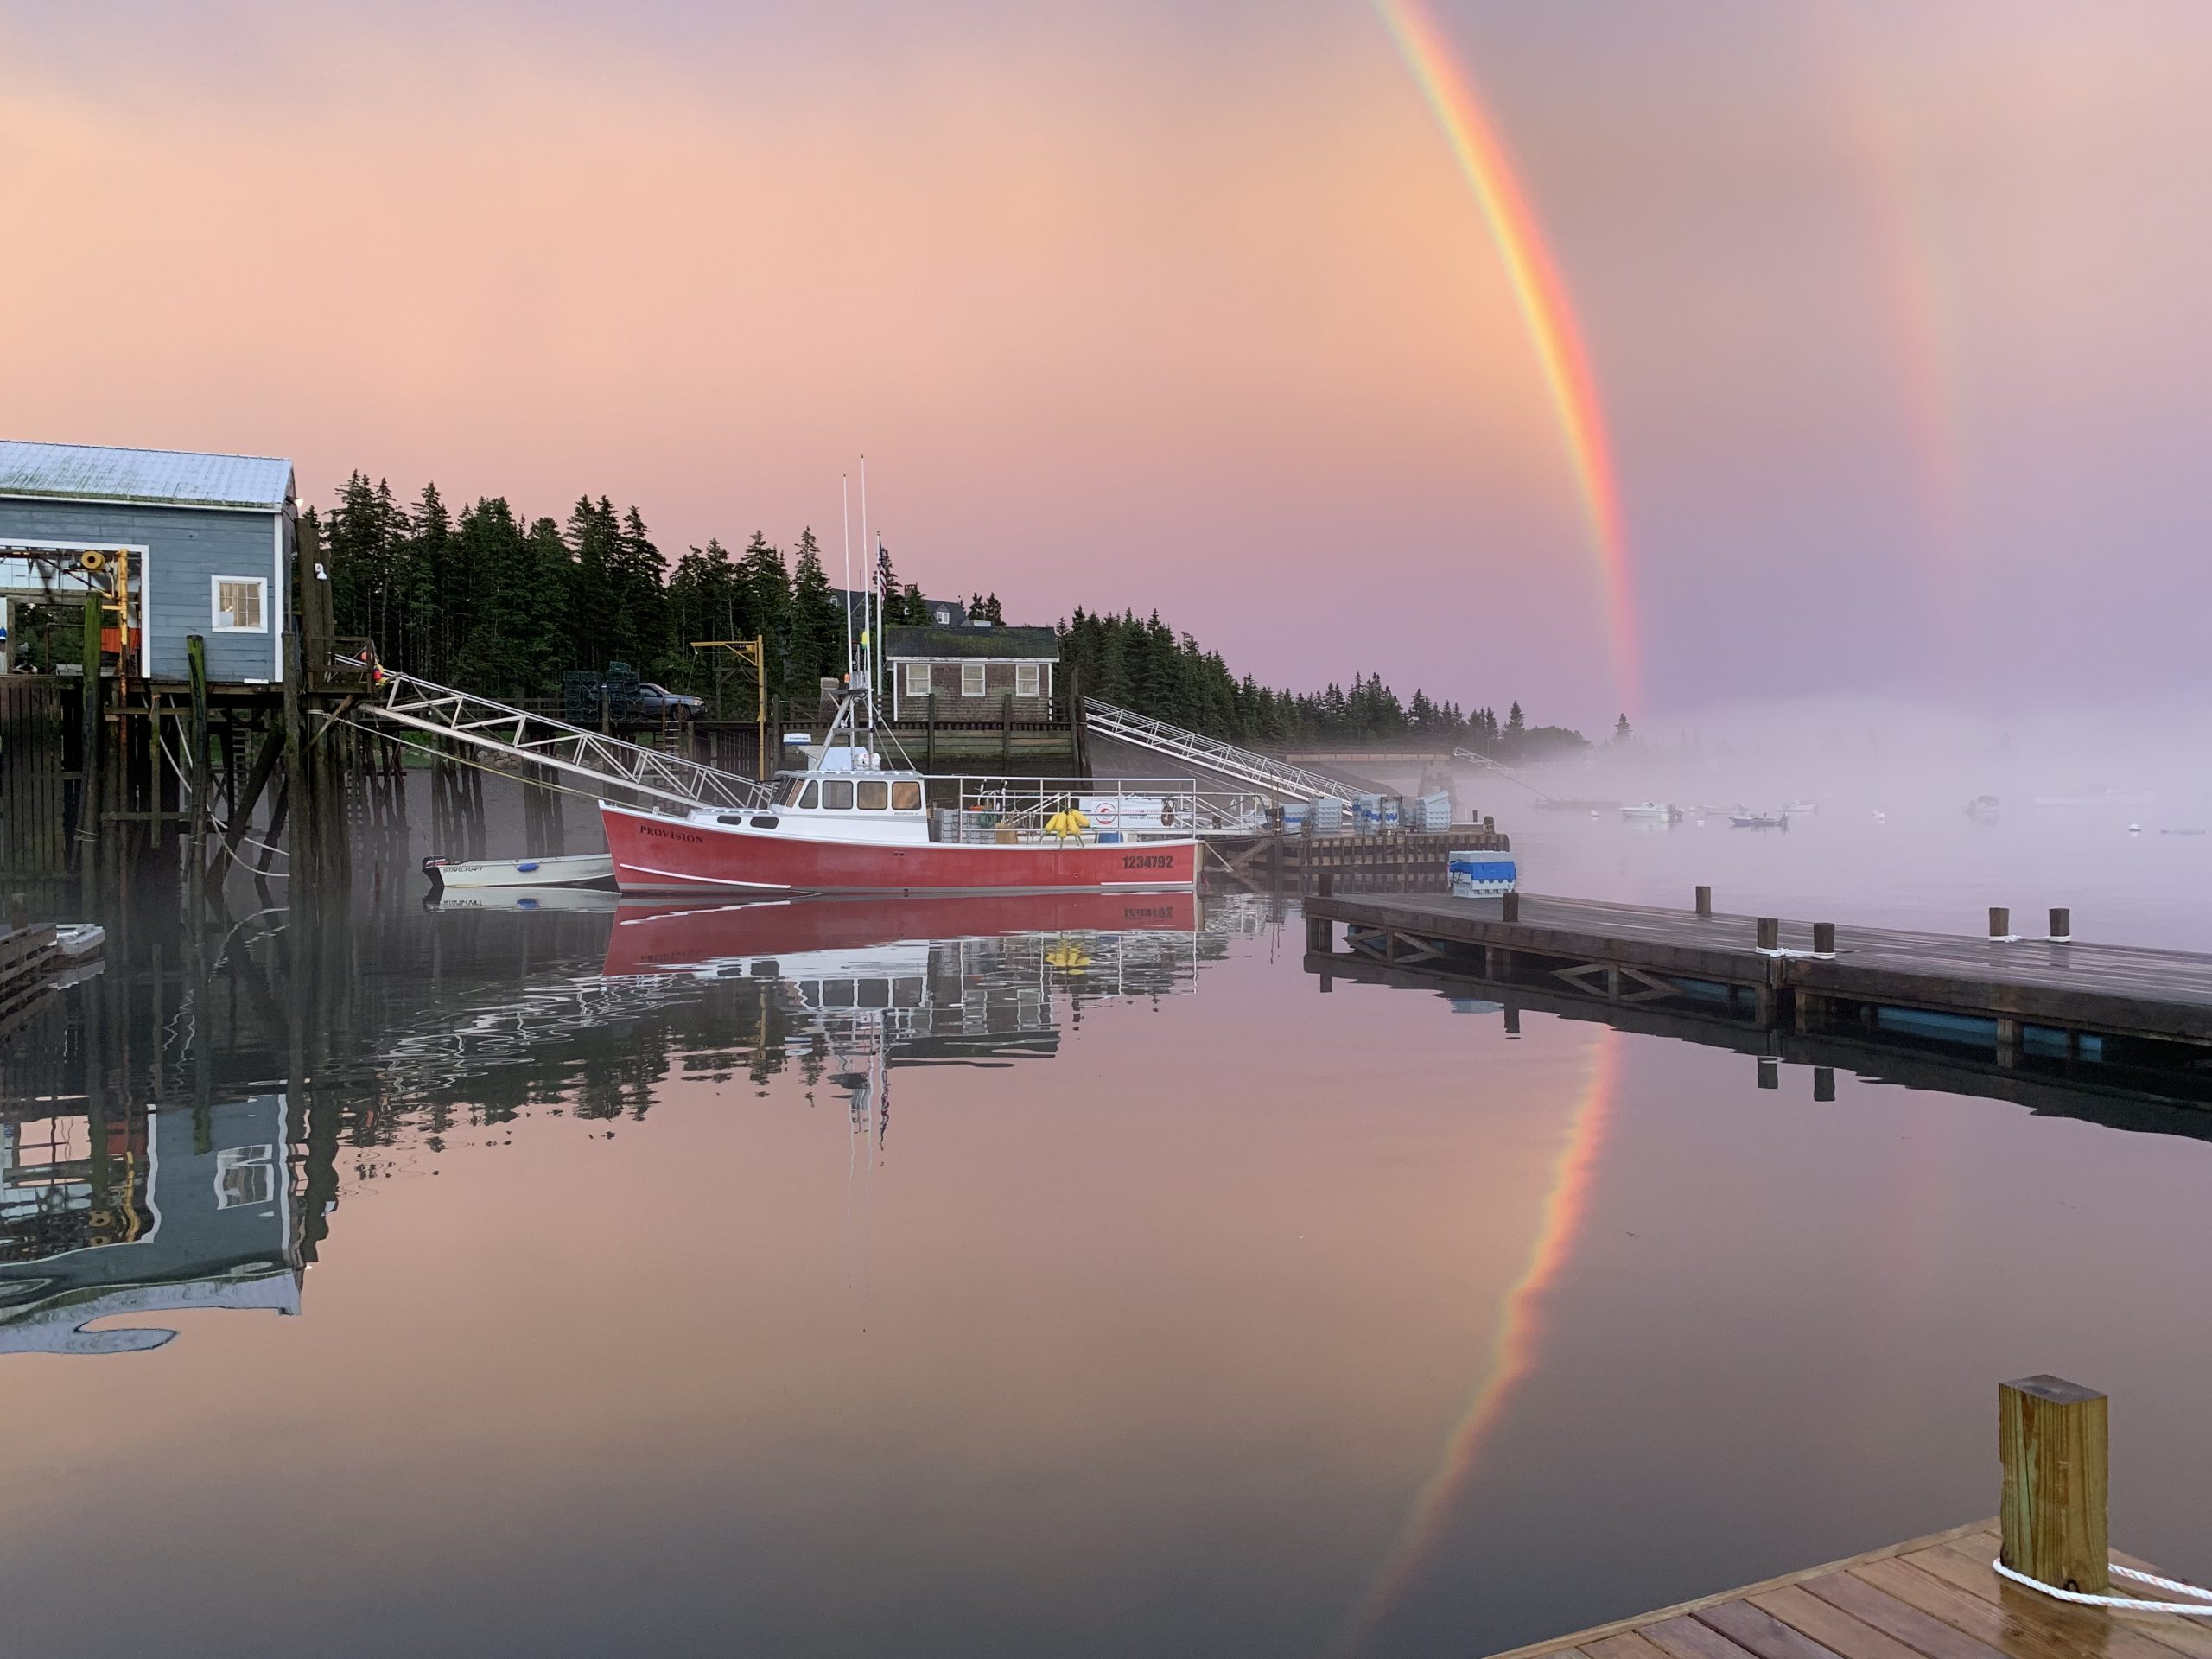 Fisherman's co-op in a rainbow by Jessica Reece